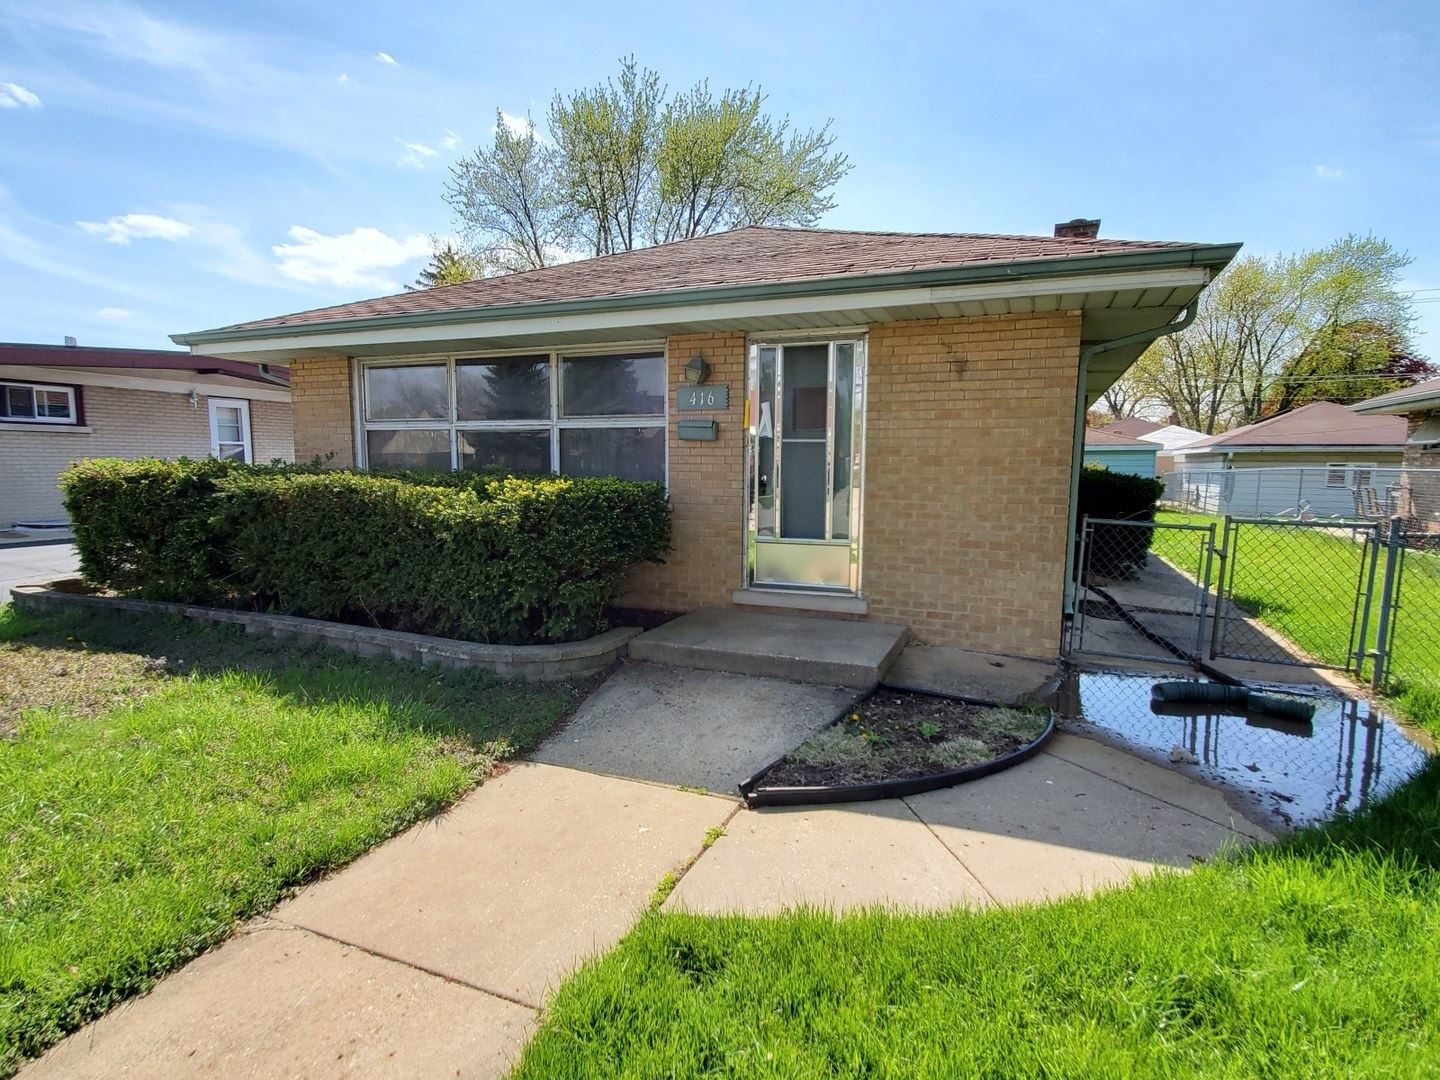 416 51st Avenue, Bellwood, IL 60104 - #: 10715025